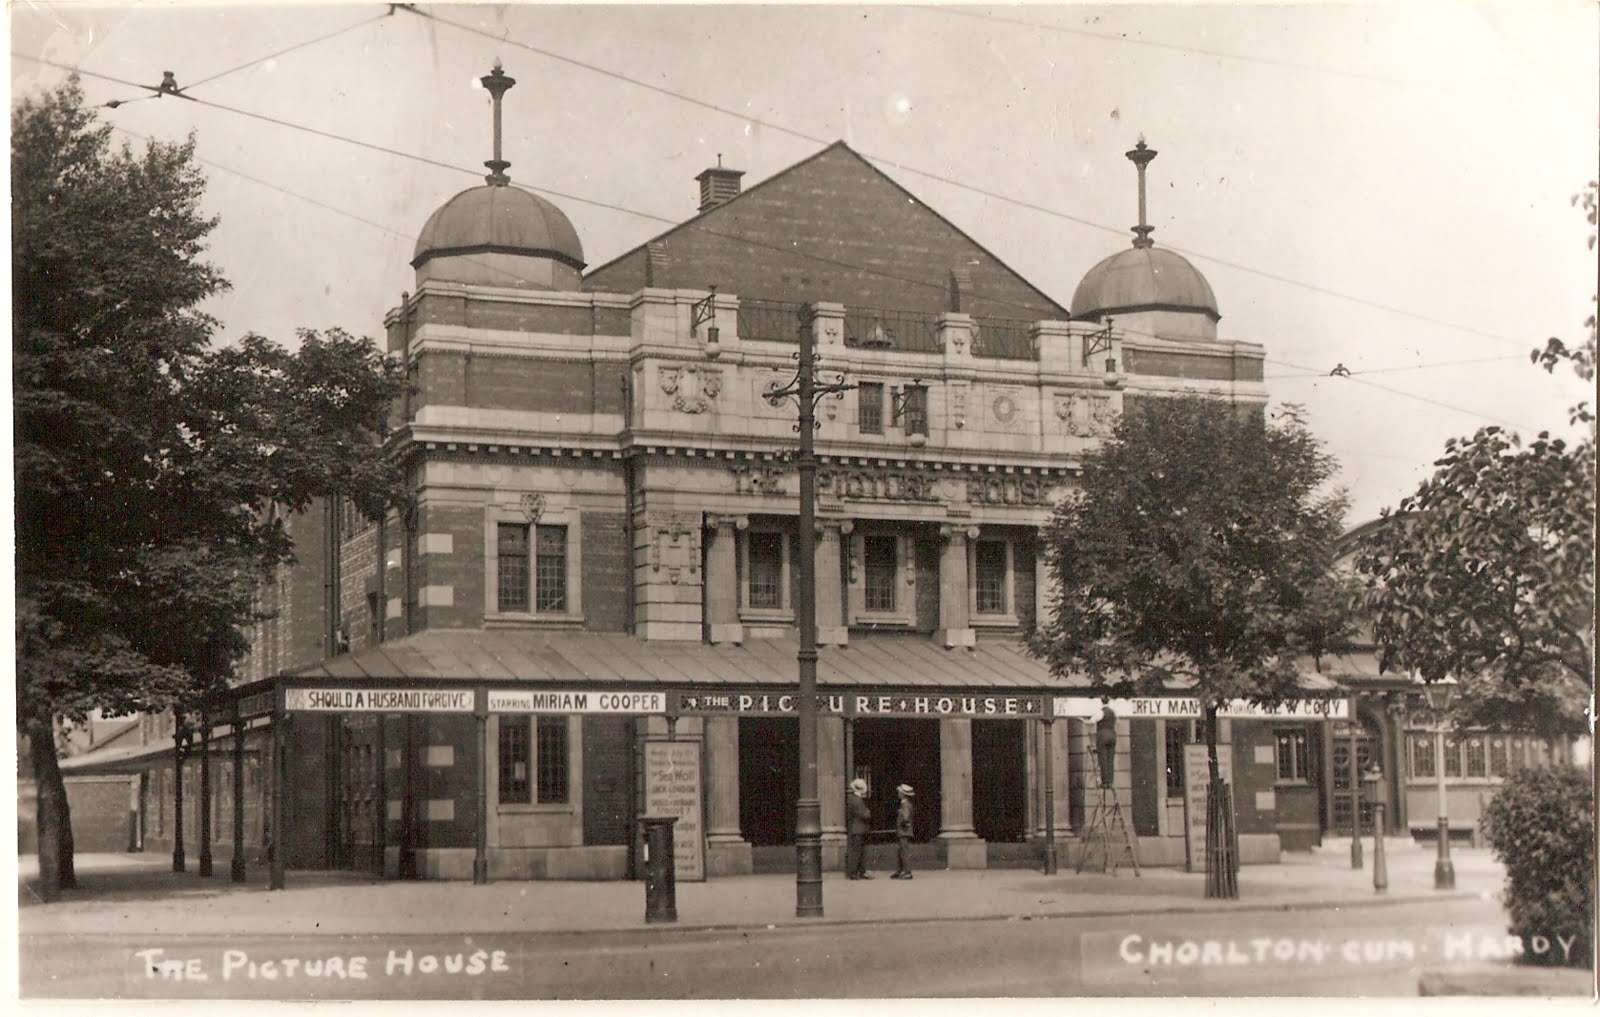 But it is also the little detail in the photograph that makes it special. Just in front of the cinema is the emergency telephone for summing the fire ... & Andrew Simpson: Sometime on a summers day in the early 1920s and a ...